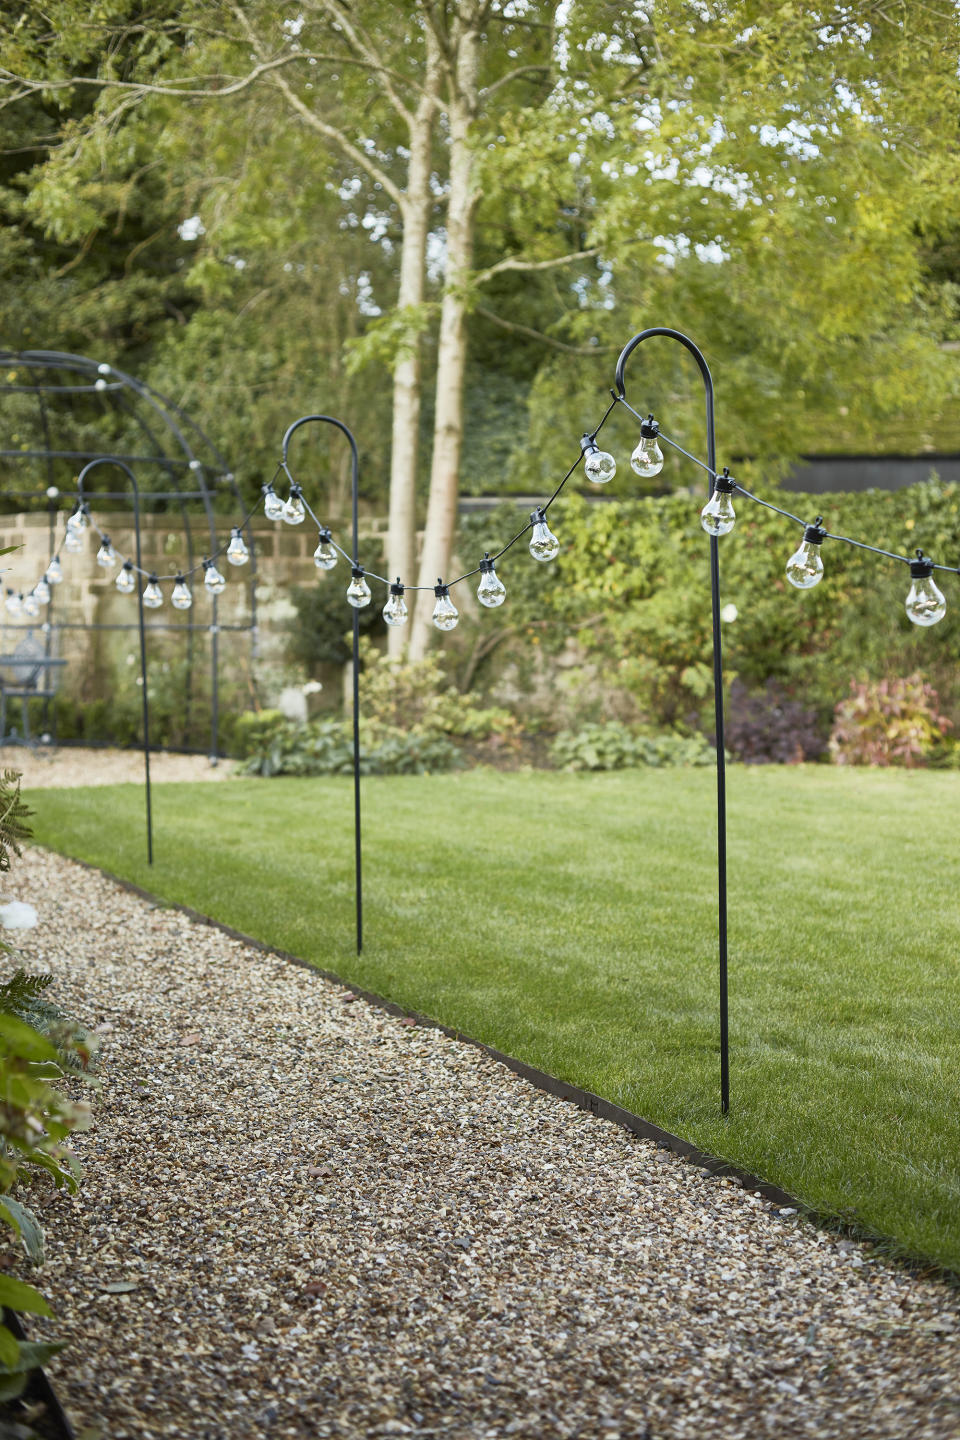 Garden fence ideas: Lights4Fun_Shepherds Hooks Stakes with Festoons